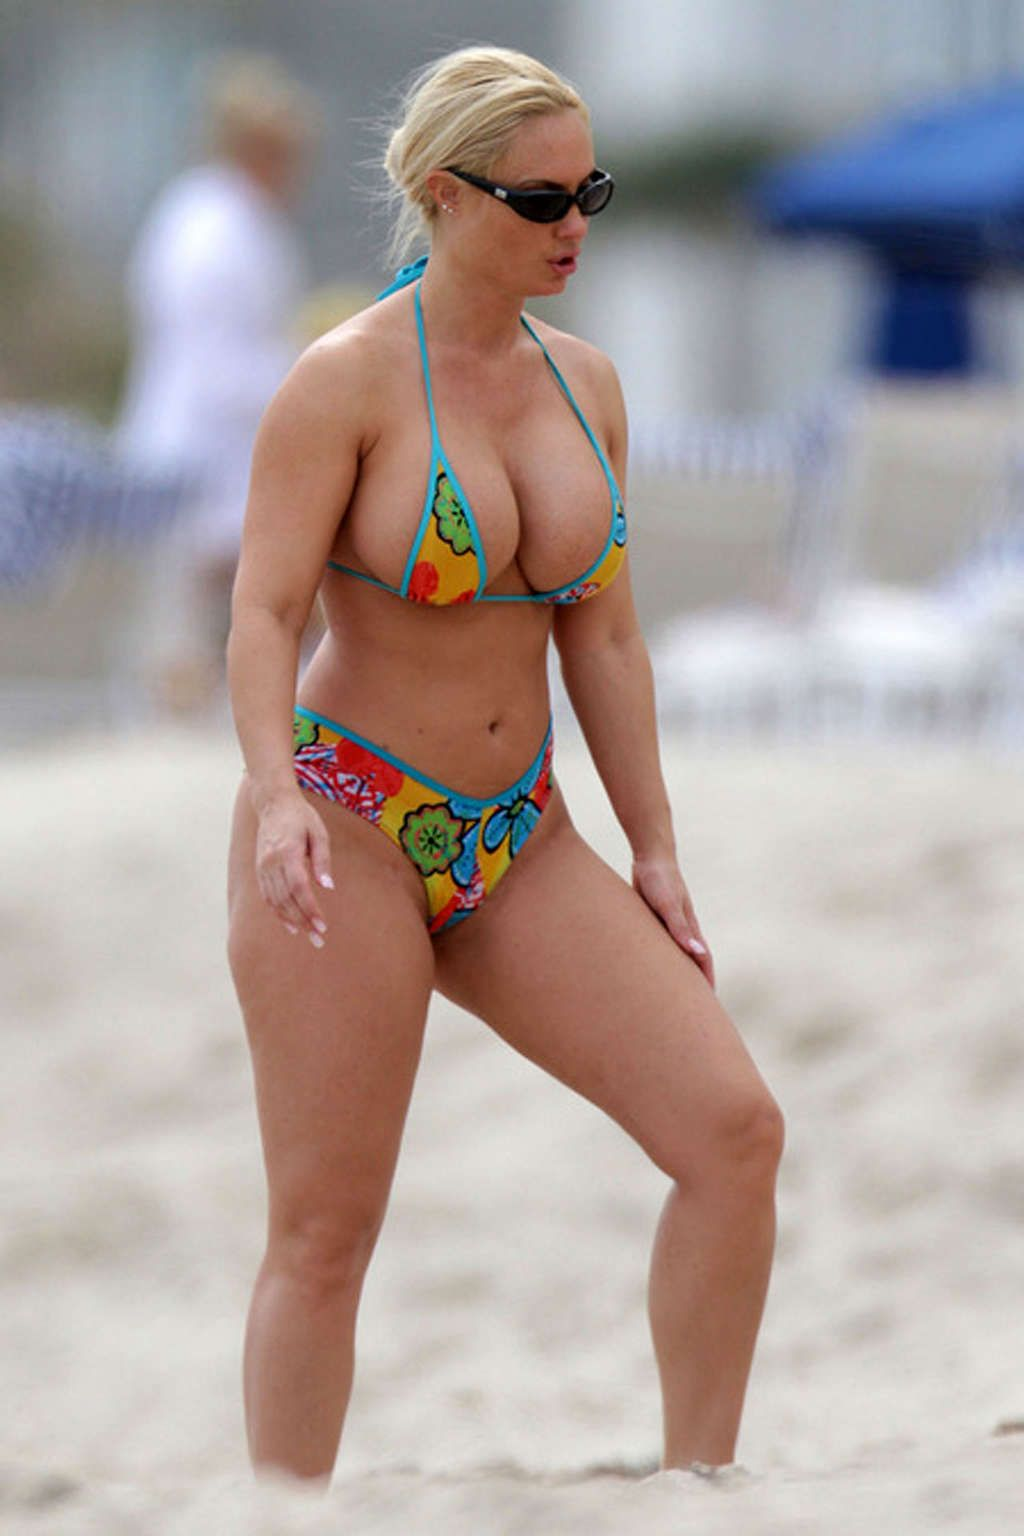 hot croatian president hot pictures